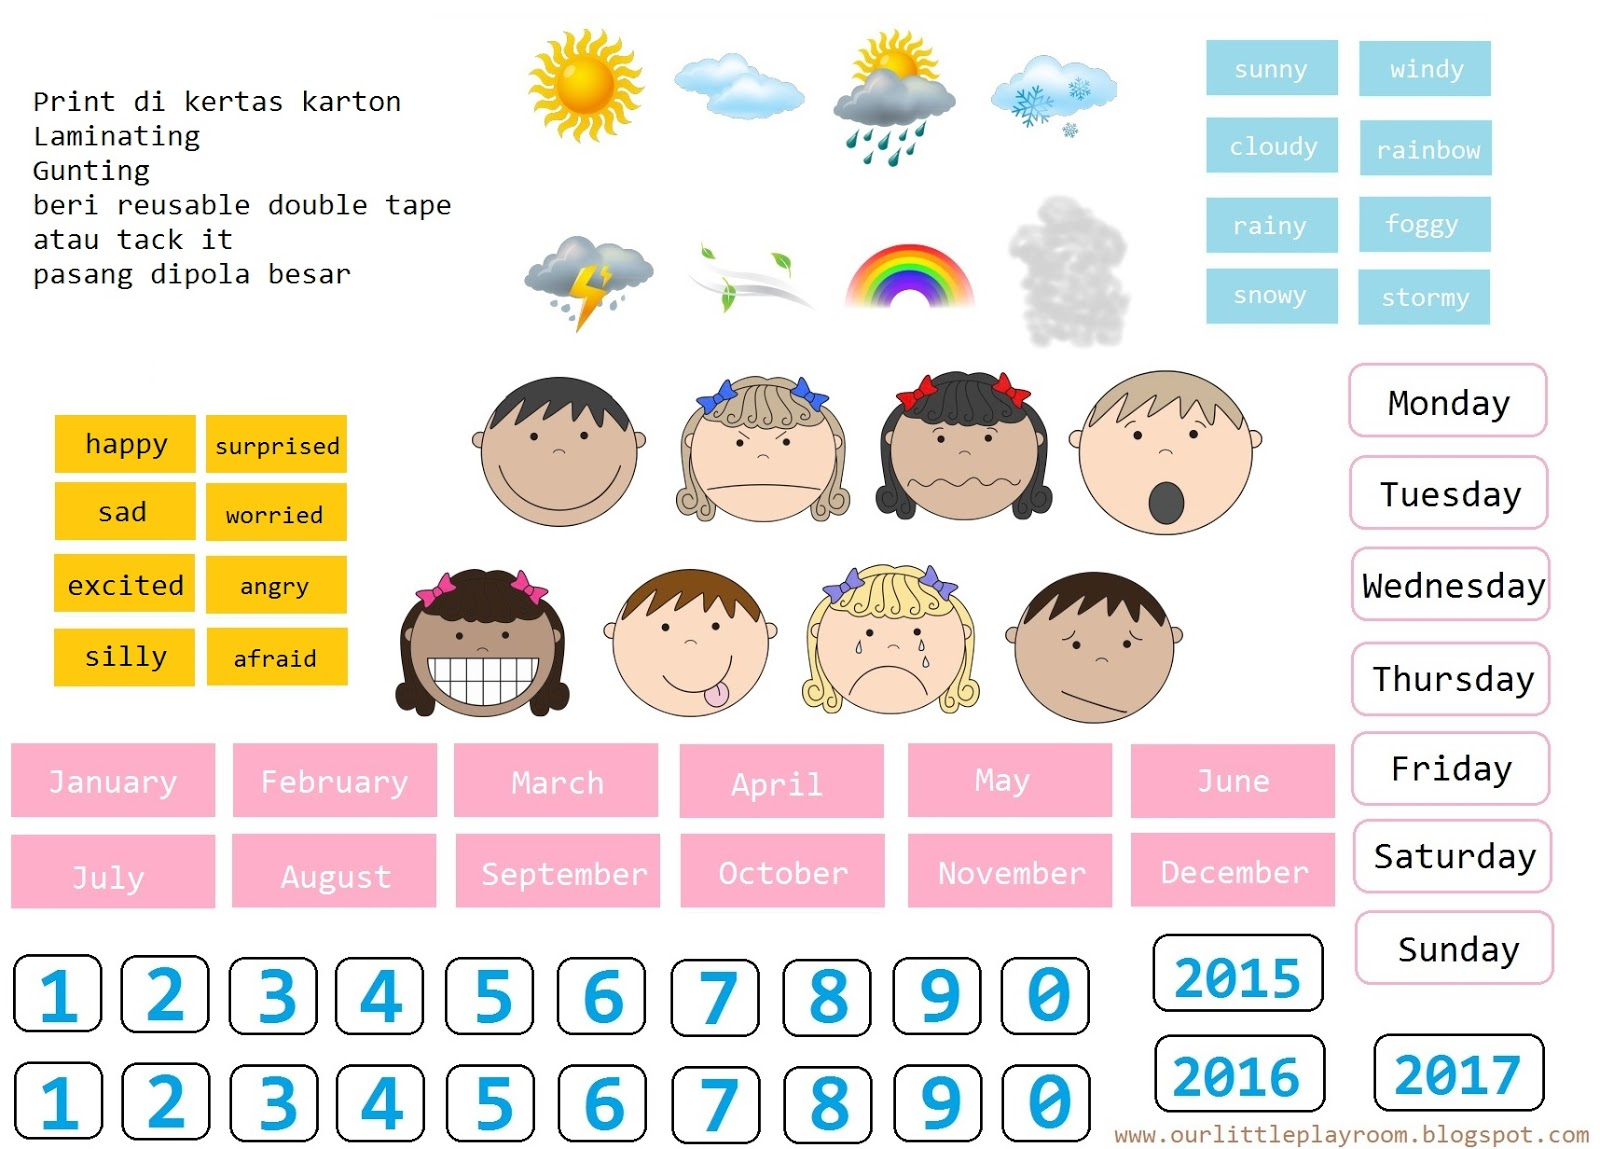 Worksheets Worksheet-bahasa-indonesia our little playroom 2015 today hanging chart